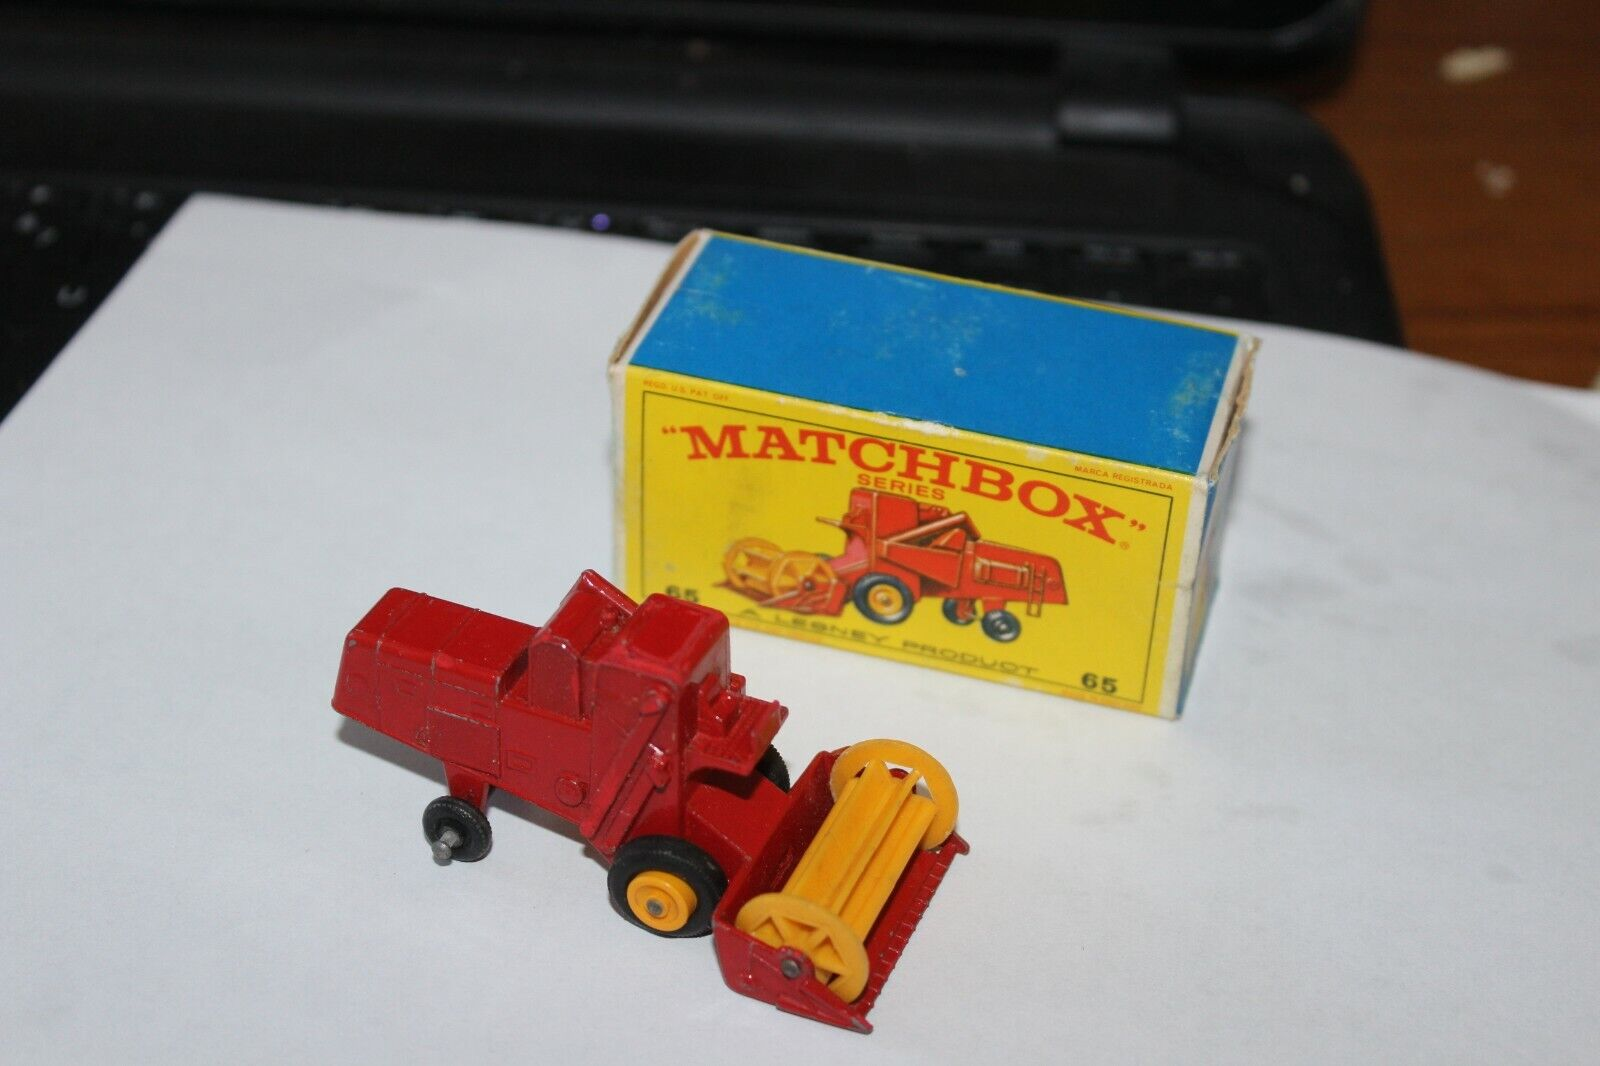 1967 Matchbox-Red Claas Combine Harvester #65-In Original Box